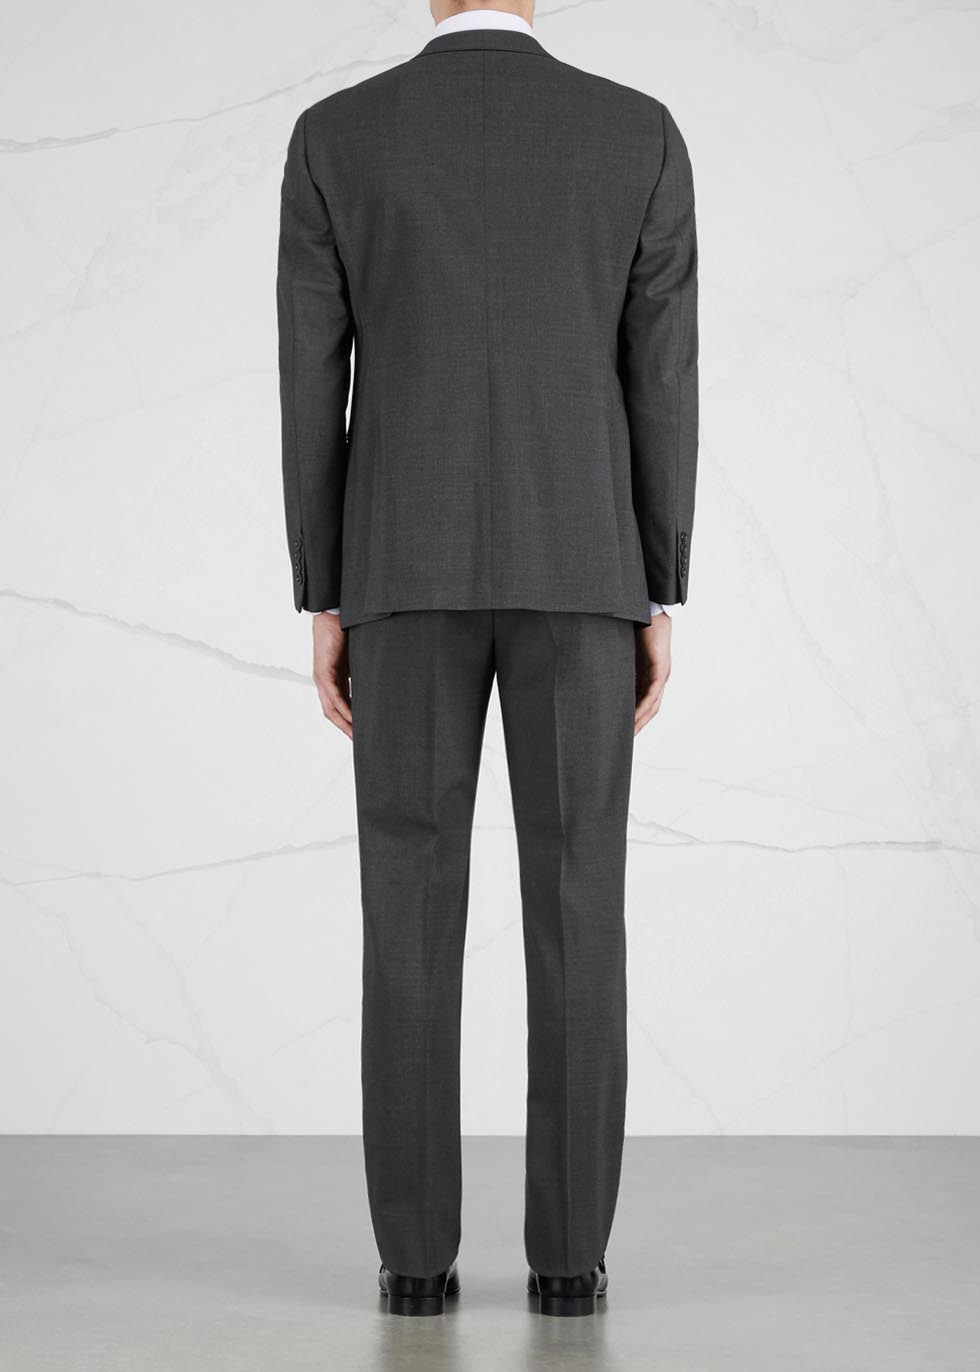 G-line charcoal stretch wool suit - Emporio Armani